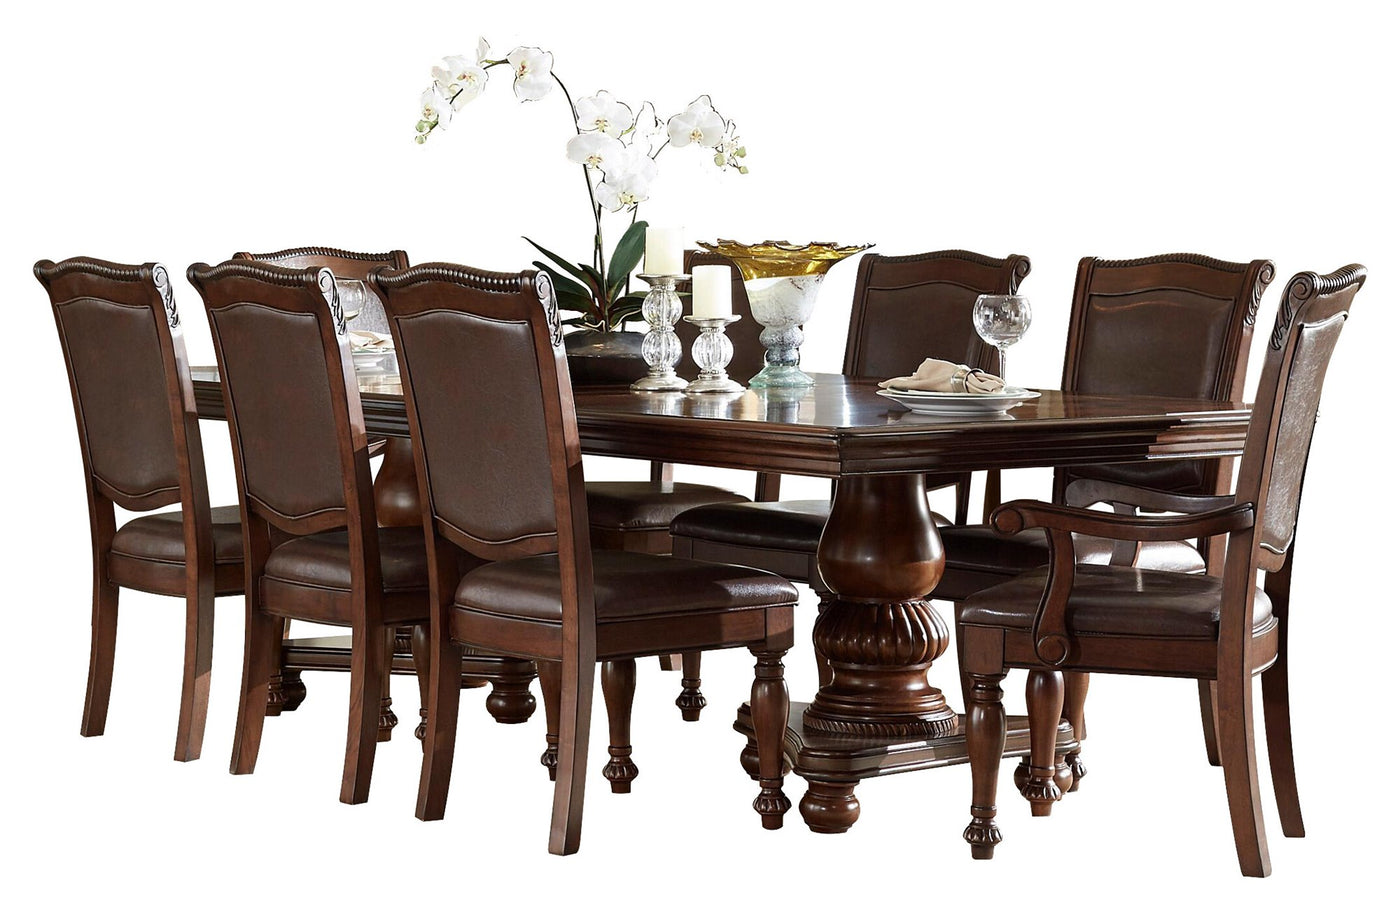 Homelegance Lordsburg 9PC Dining Set Double Pedestal Table, 2 Arm Chair, 6  Side Chair In Brown Cherry